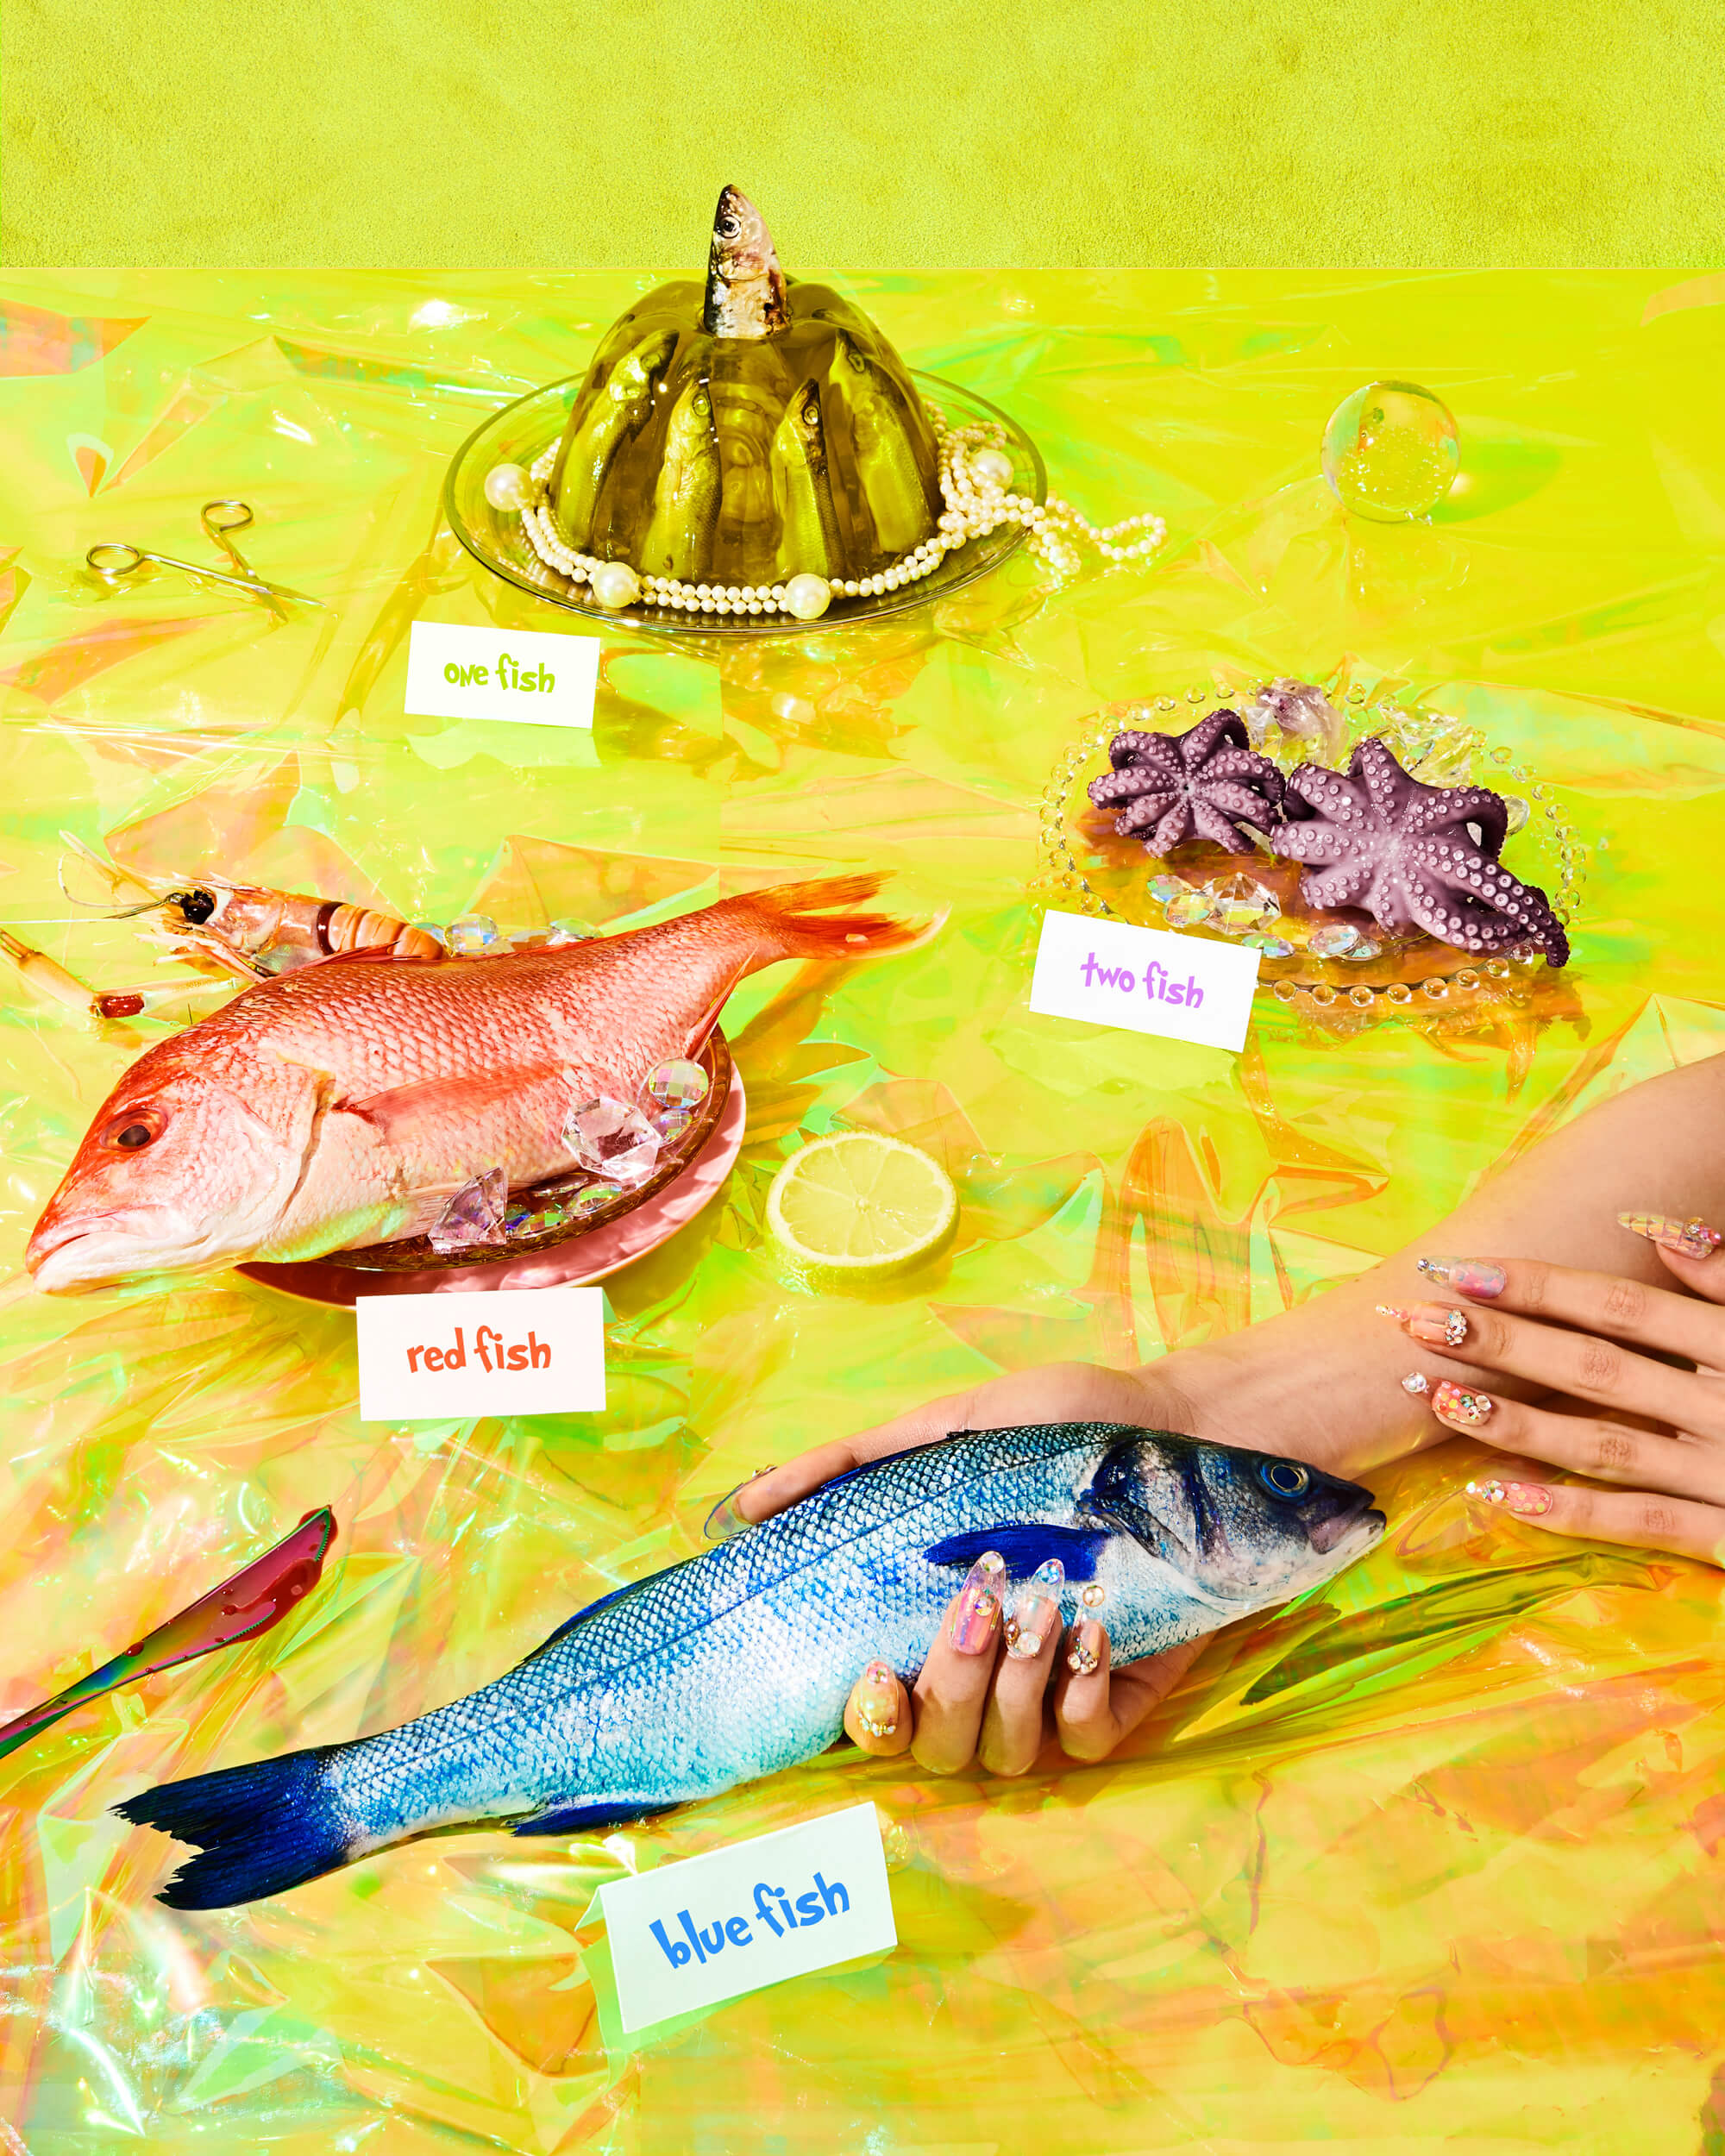 credits: photo- jenna gang, creative direction- edward yeung, prop styling- anna lemi, food styling- ali nardi, manicure- ada yeung, model- likai lai  description: conceptual food photograph of a one fish, two fish from Dr. Seuss. .